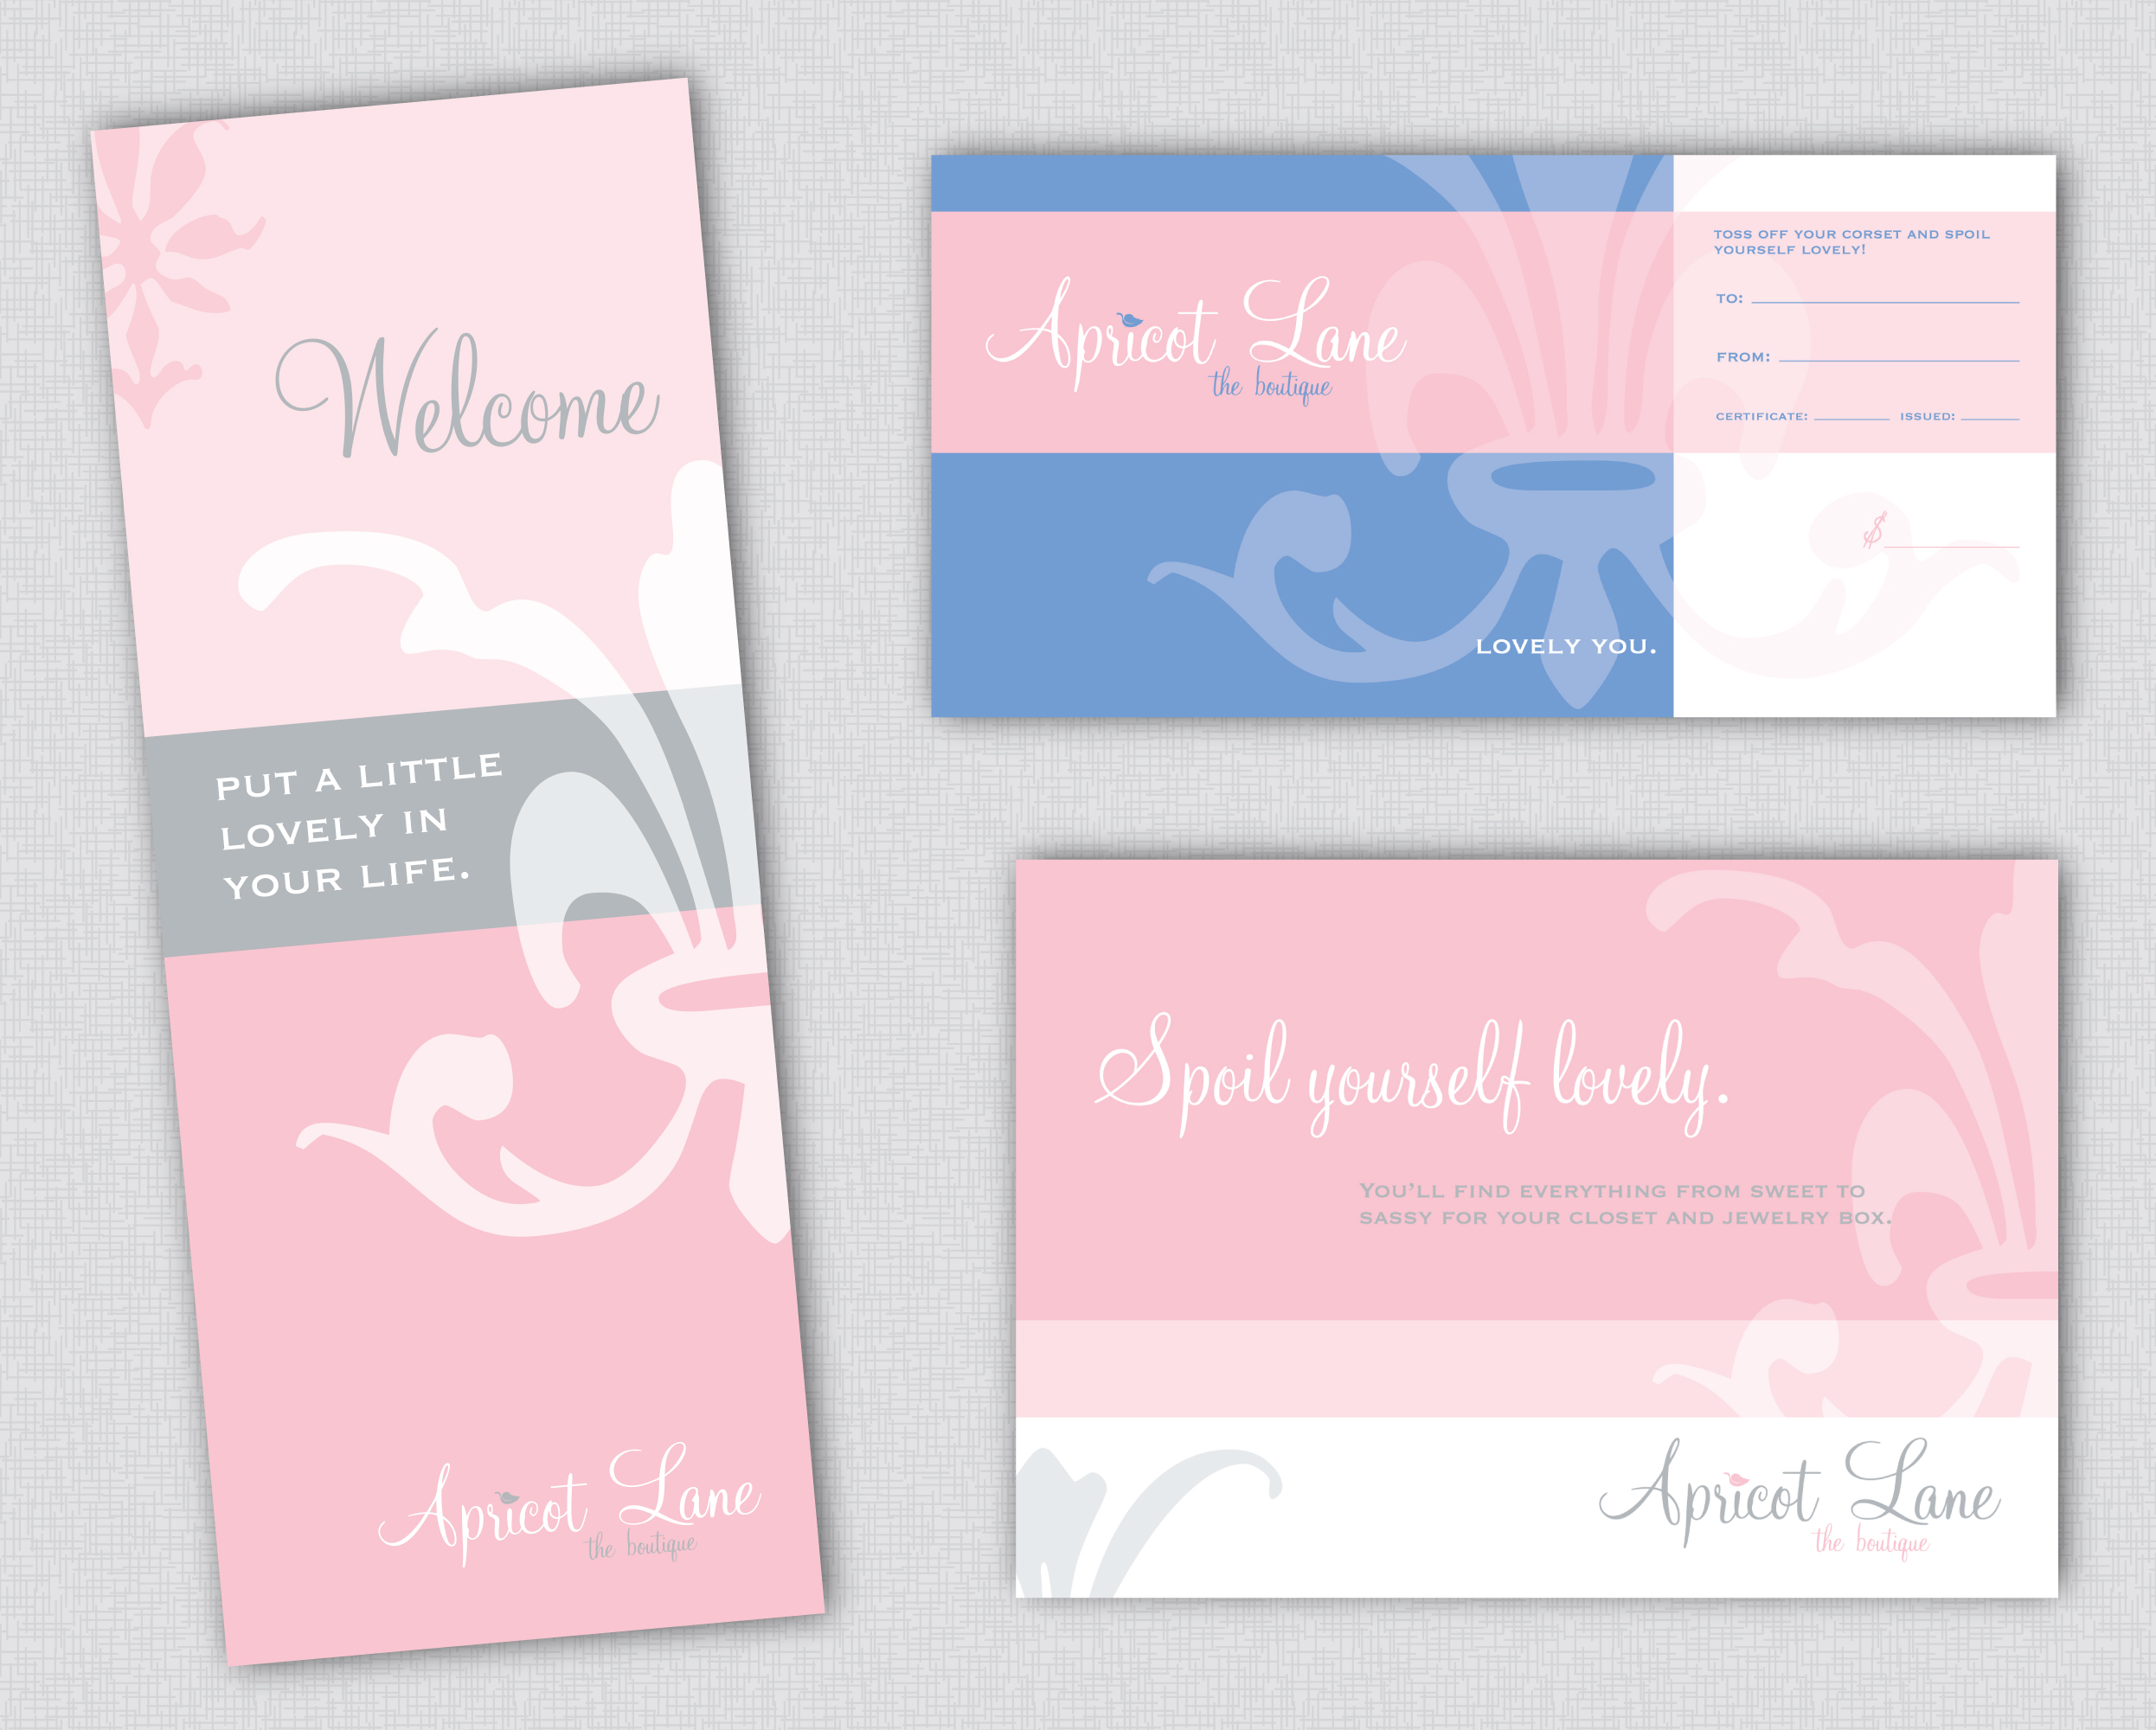 Apricot Lane | Sign, Ad, Gift Card